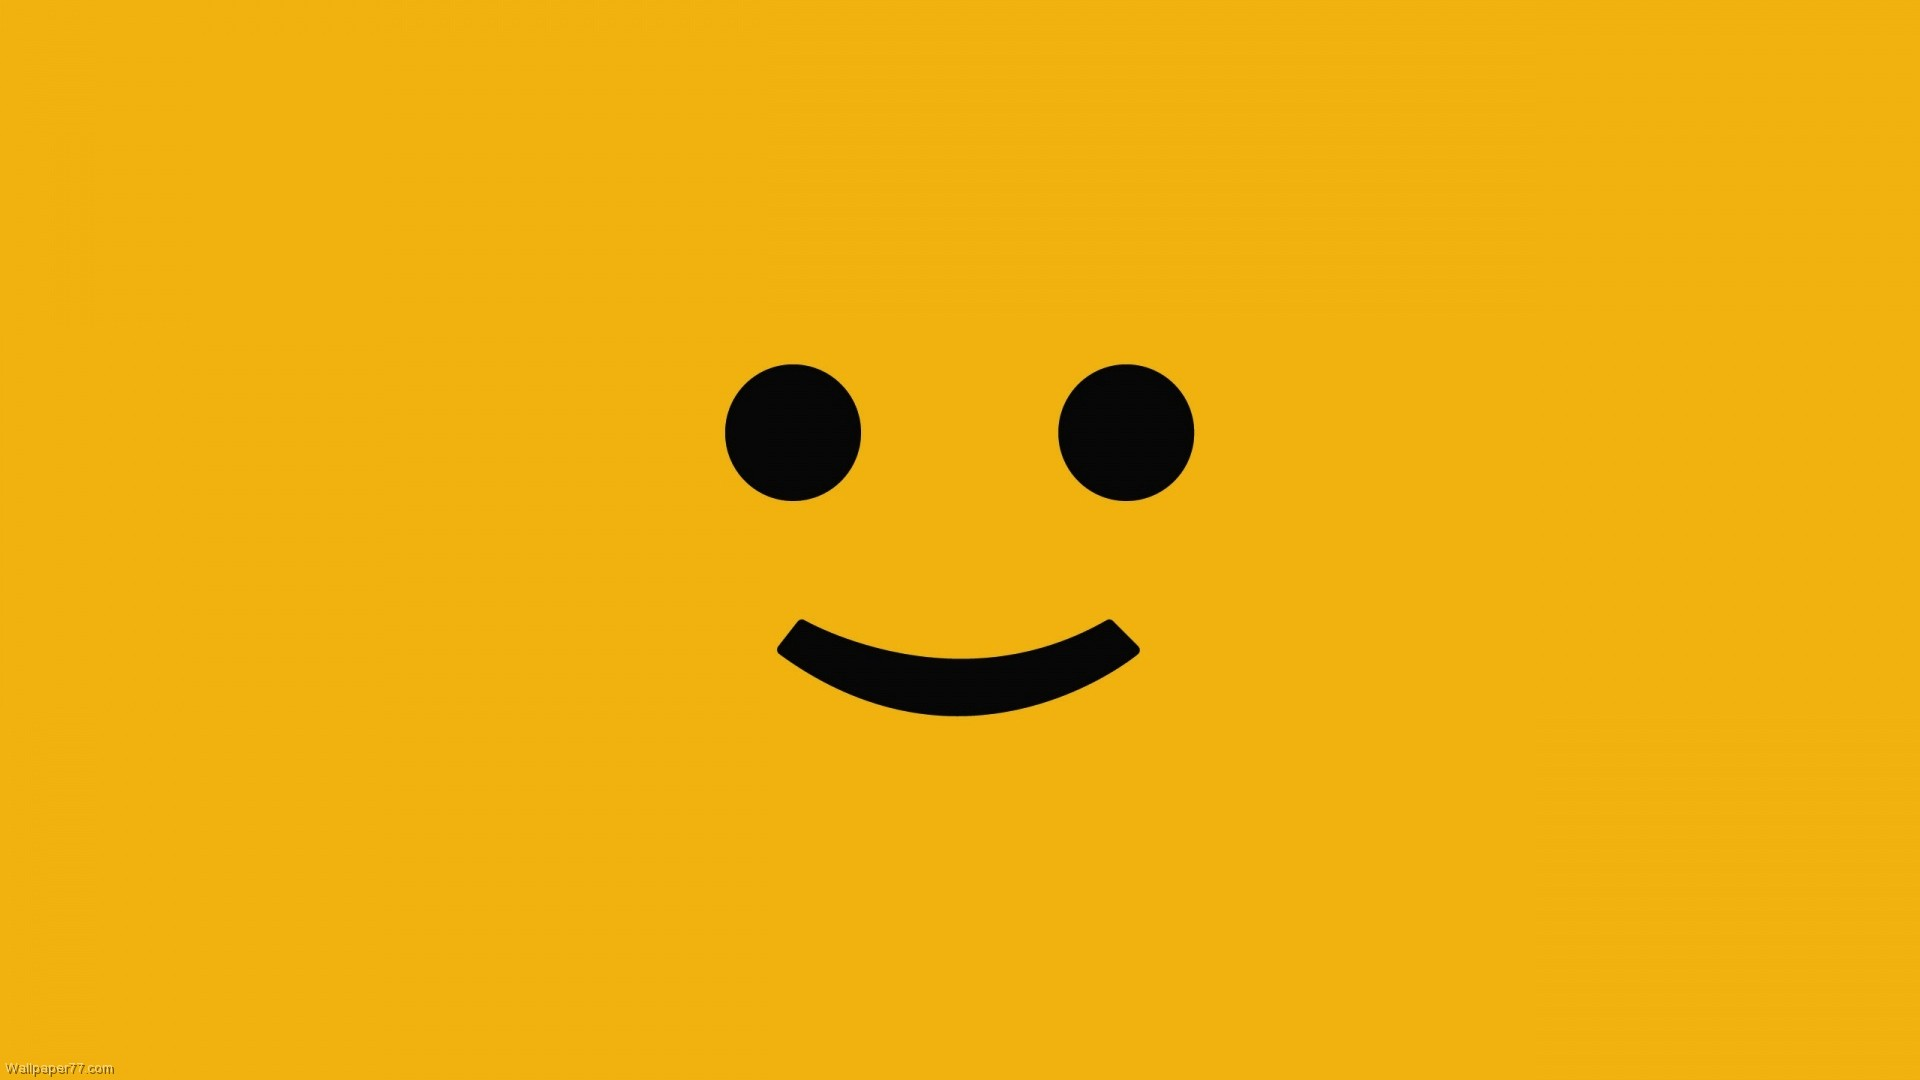 smiley-face-background-cute-fun-wallpapers-funny-wallpapers-1920x1080